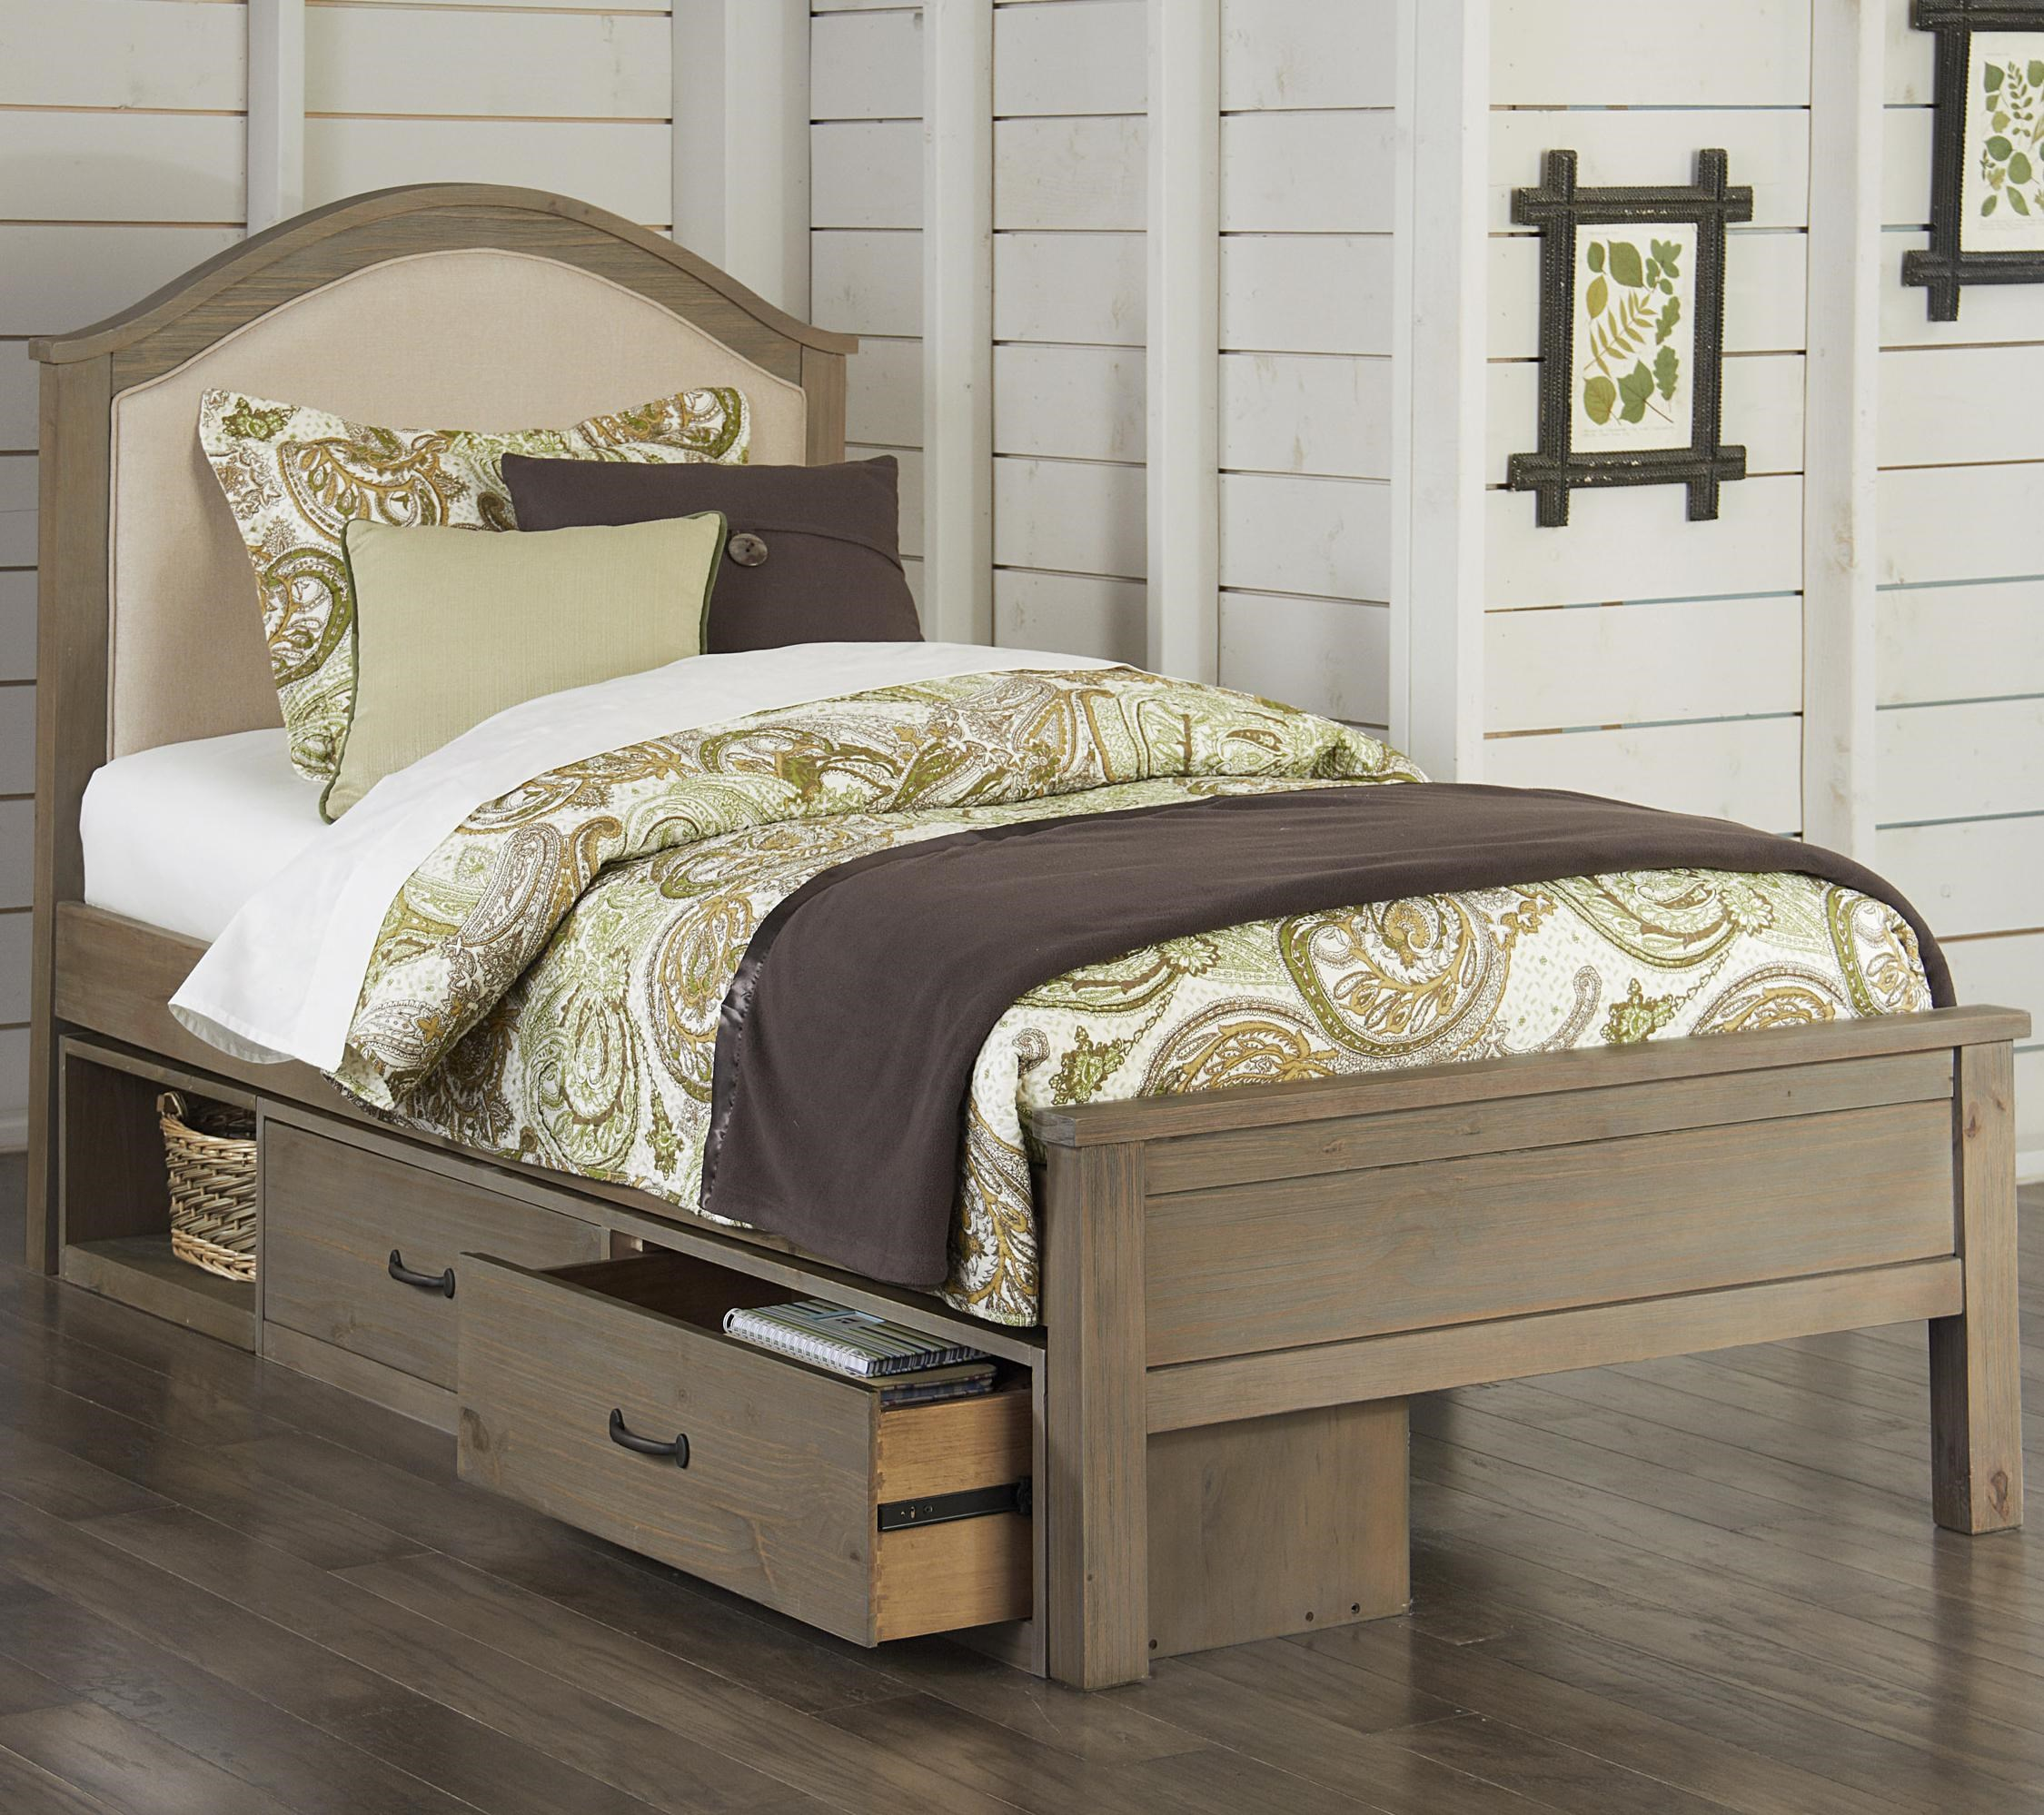 Genial NE Kids Highlands Twin Bailey Bed With Cream Upholstered Headboard And  Under Bed Storage